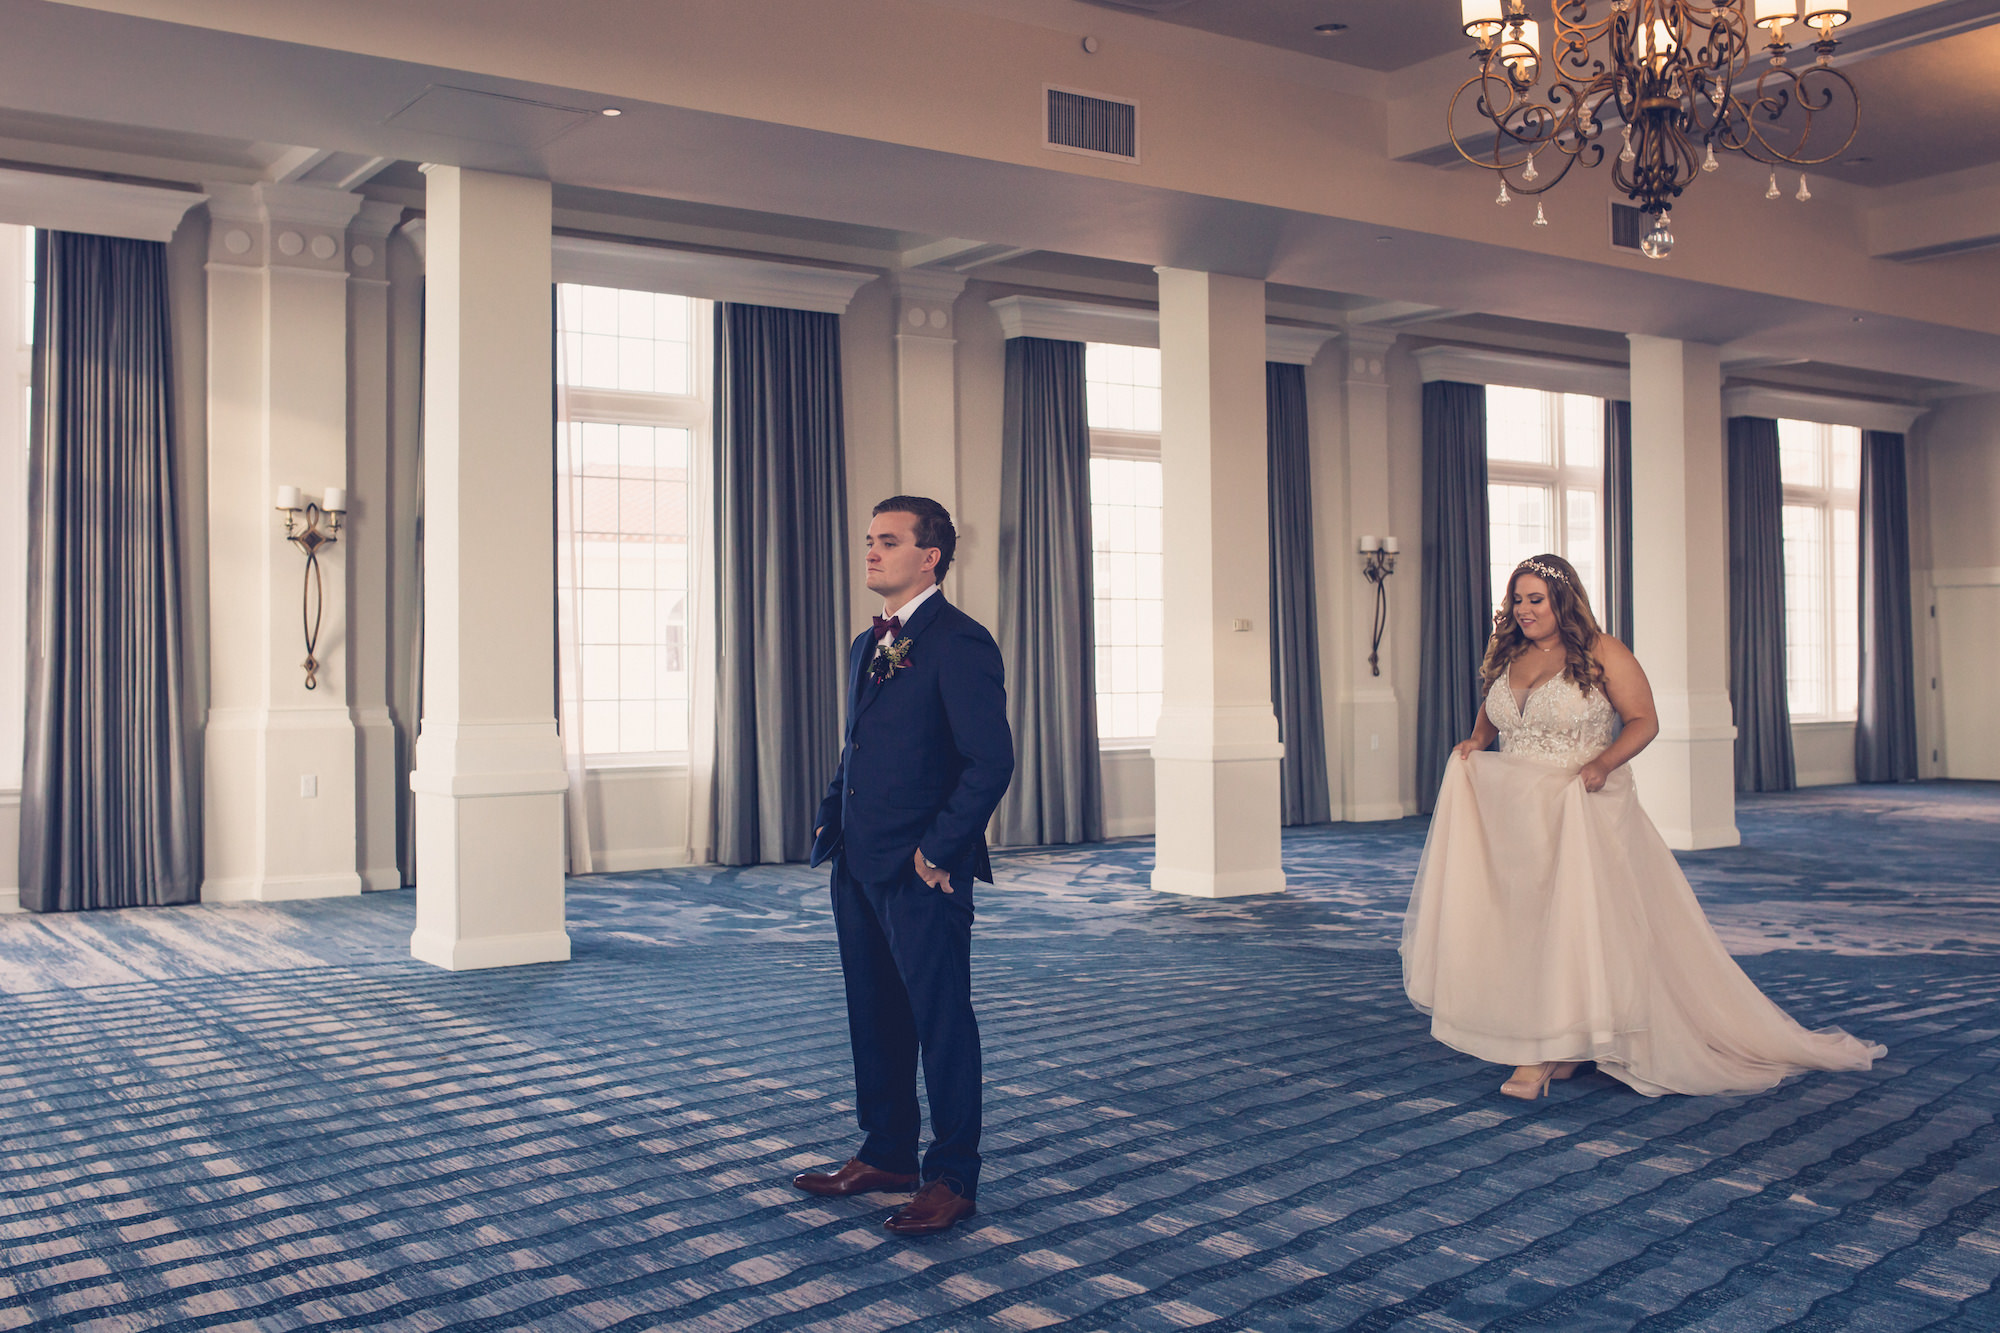 Tampa Bride and Groom First Look Wedding Portrait in The Pink Palace Historic St. Pete Wedding Venue The Don CeSar | Wedding Photographer Luxe Light Images